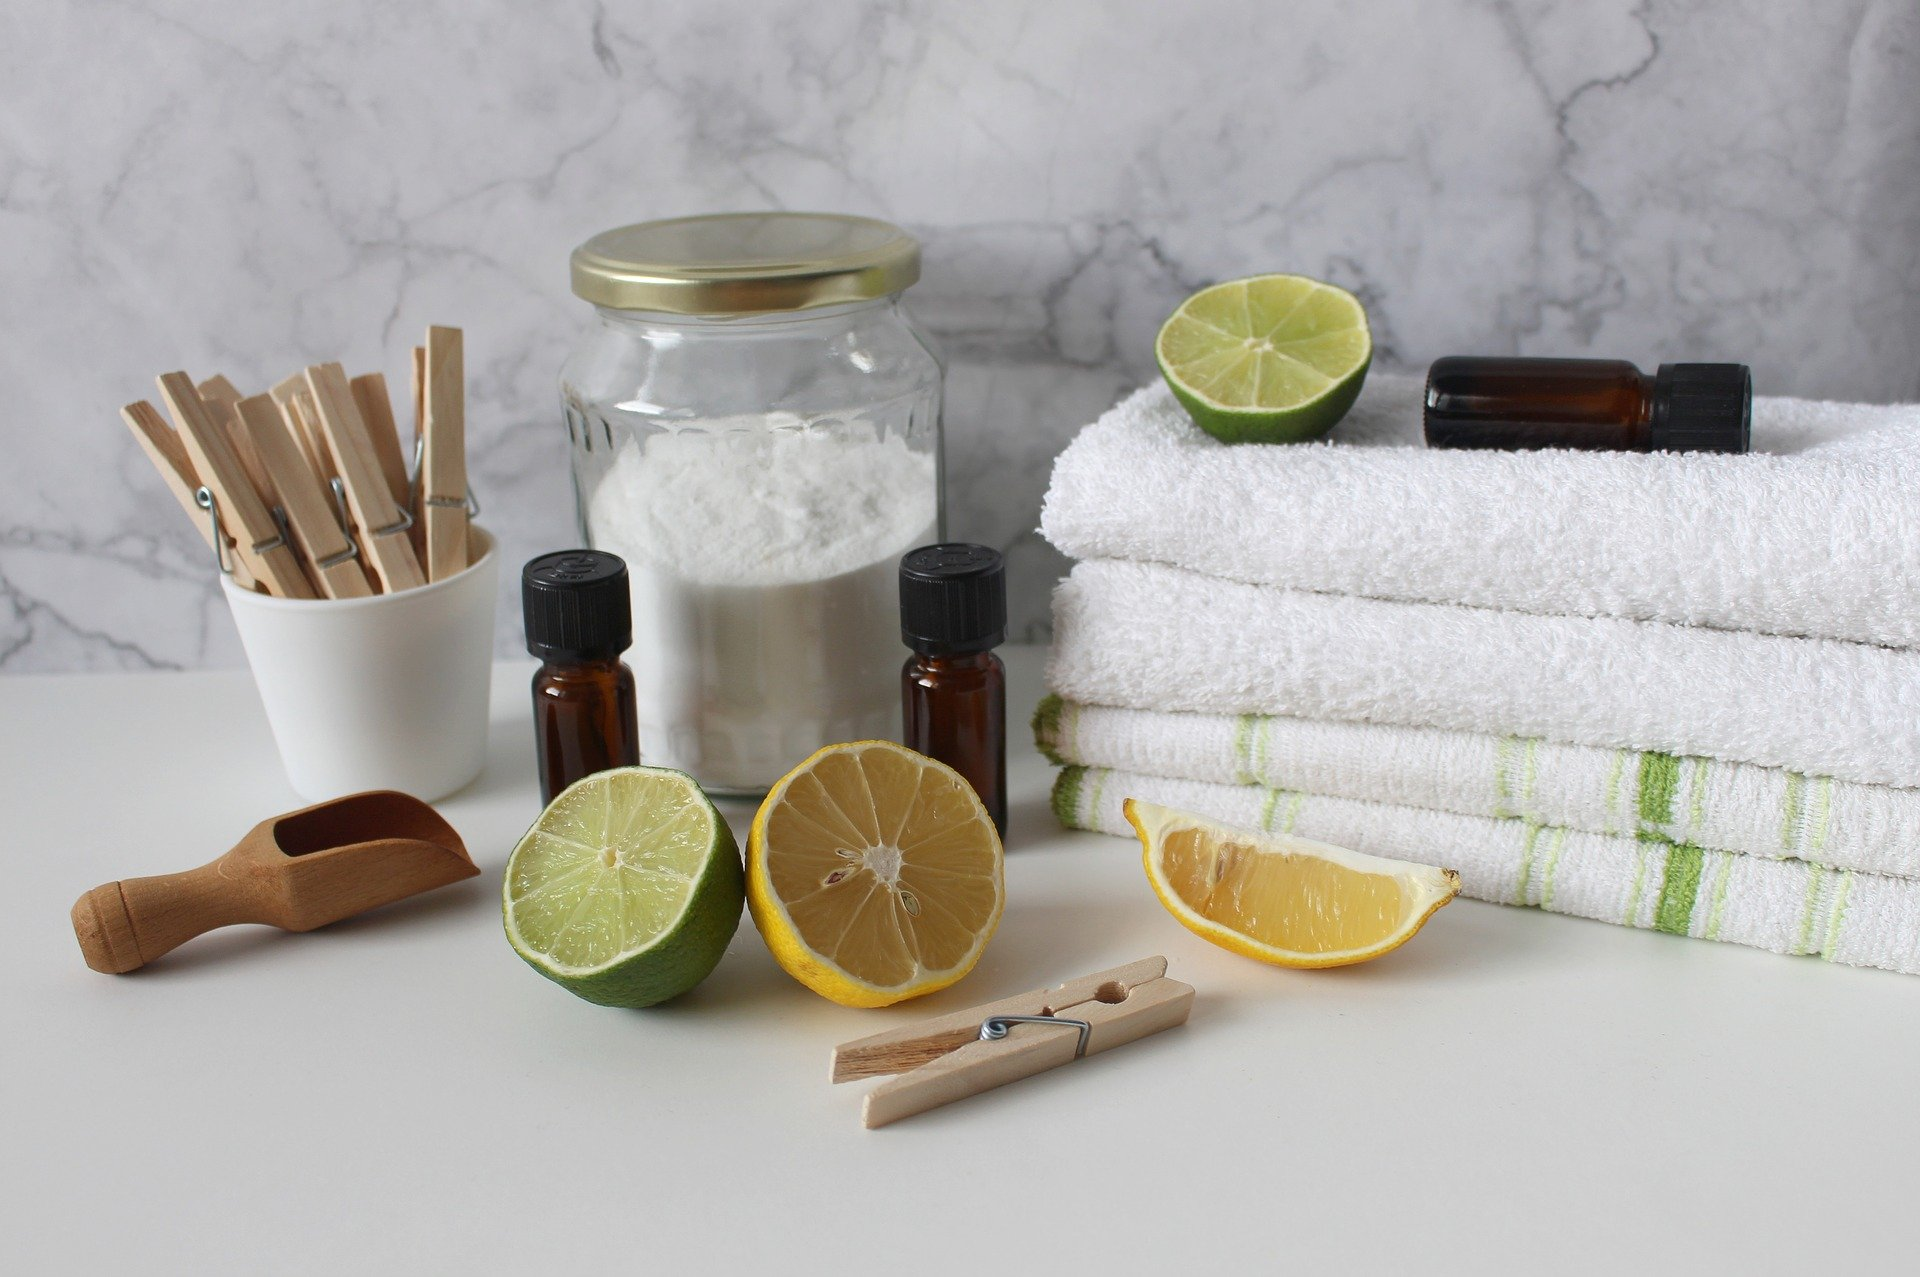 Folded towels, pegs, lemons and limes with essential oil bottles for cleaning.